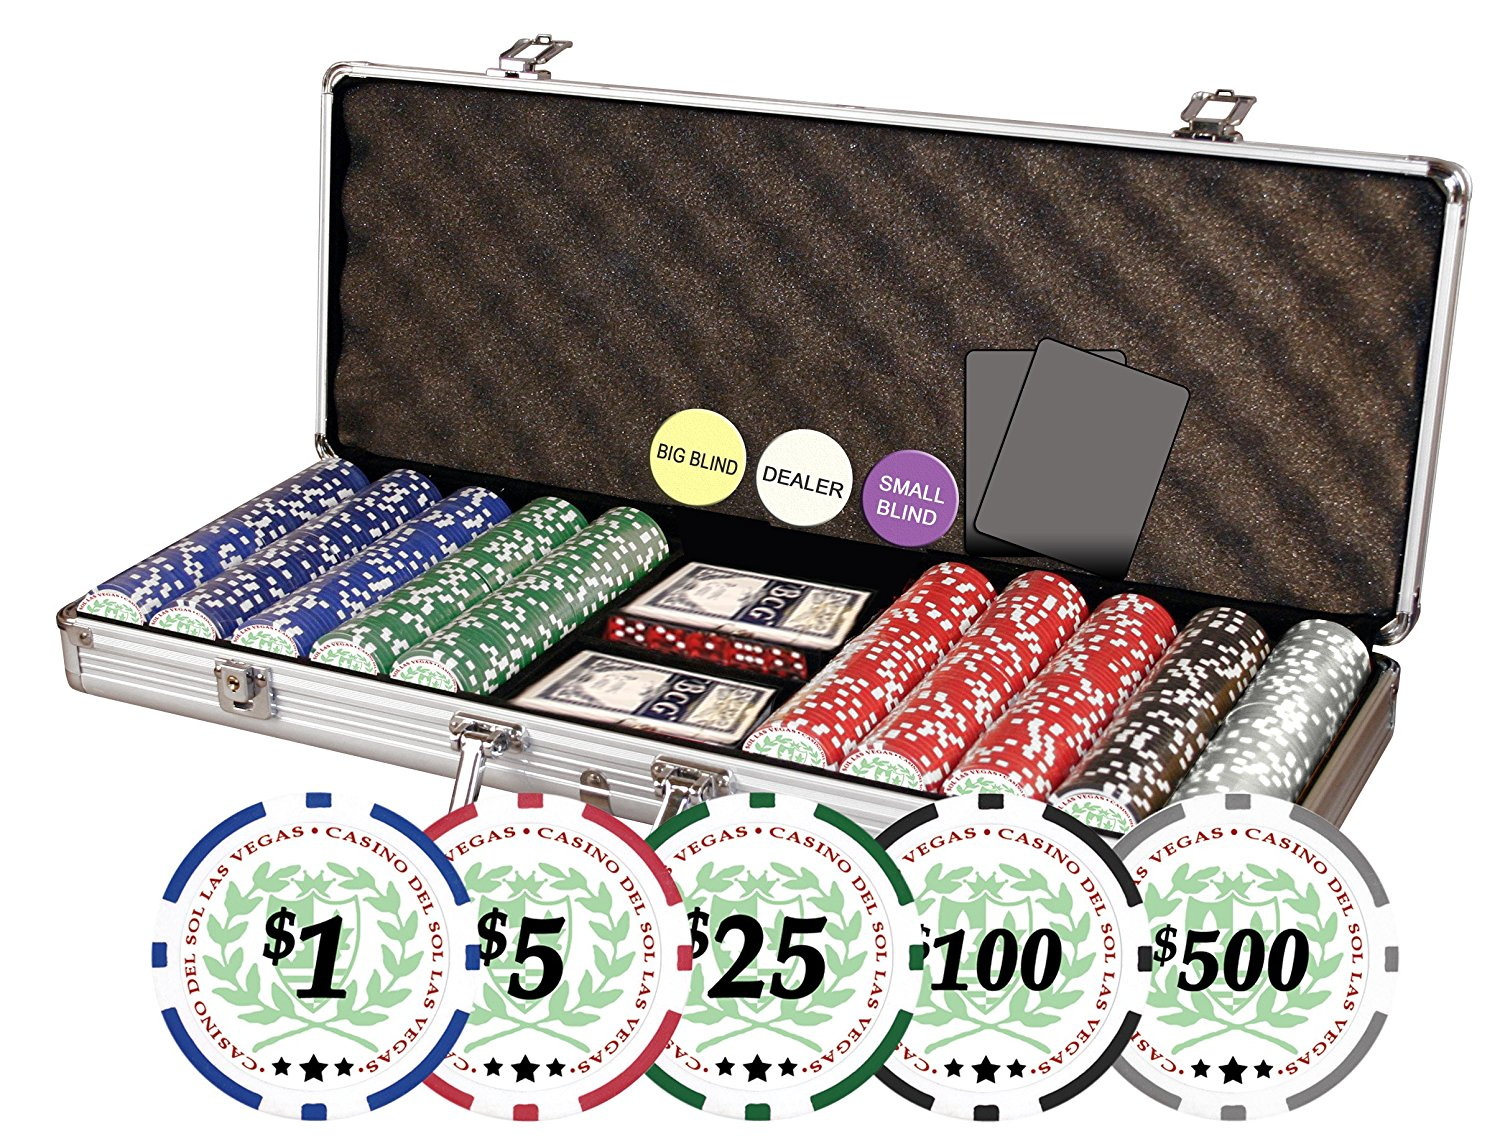 Da Vinci Professional 11.5gm Casino Del Sol Clay Poker Chips with Case - Set of 500, Includes Dealer Buttons, Cut Cards and Playing Cards